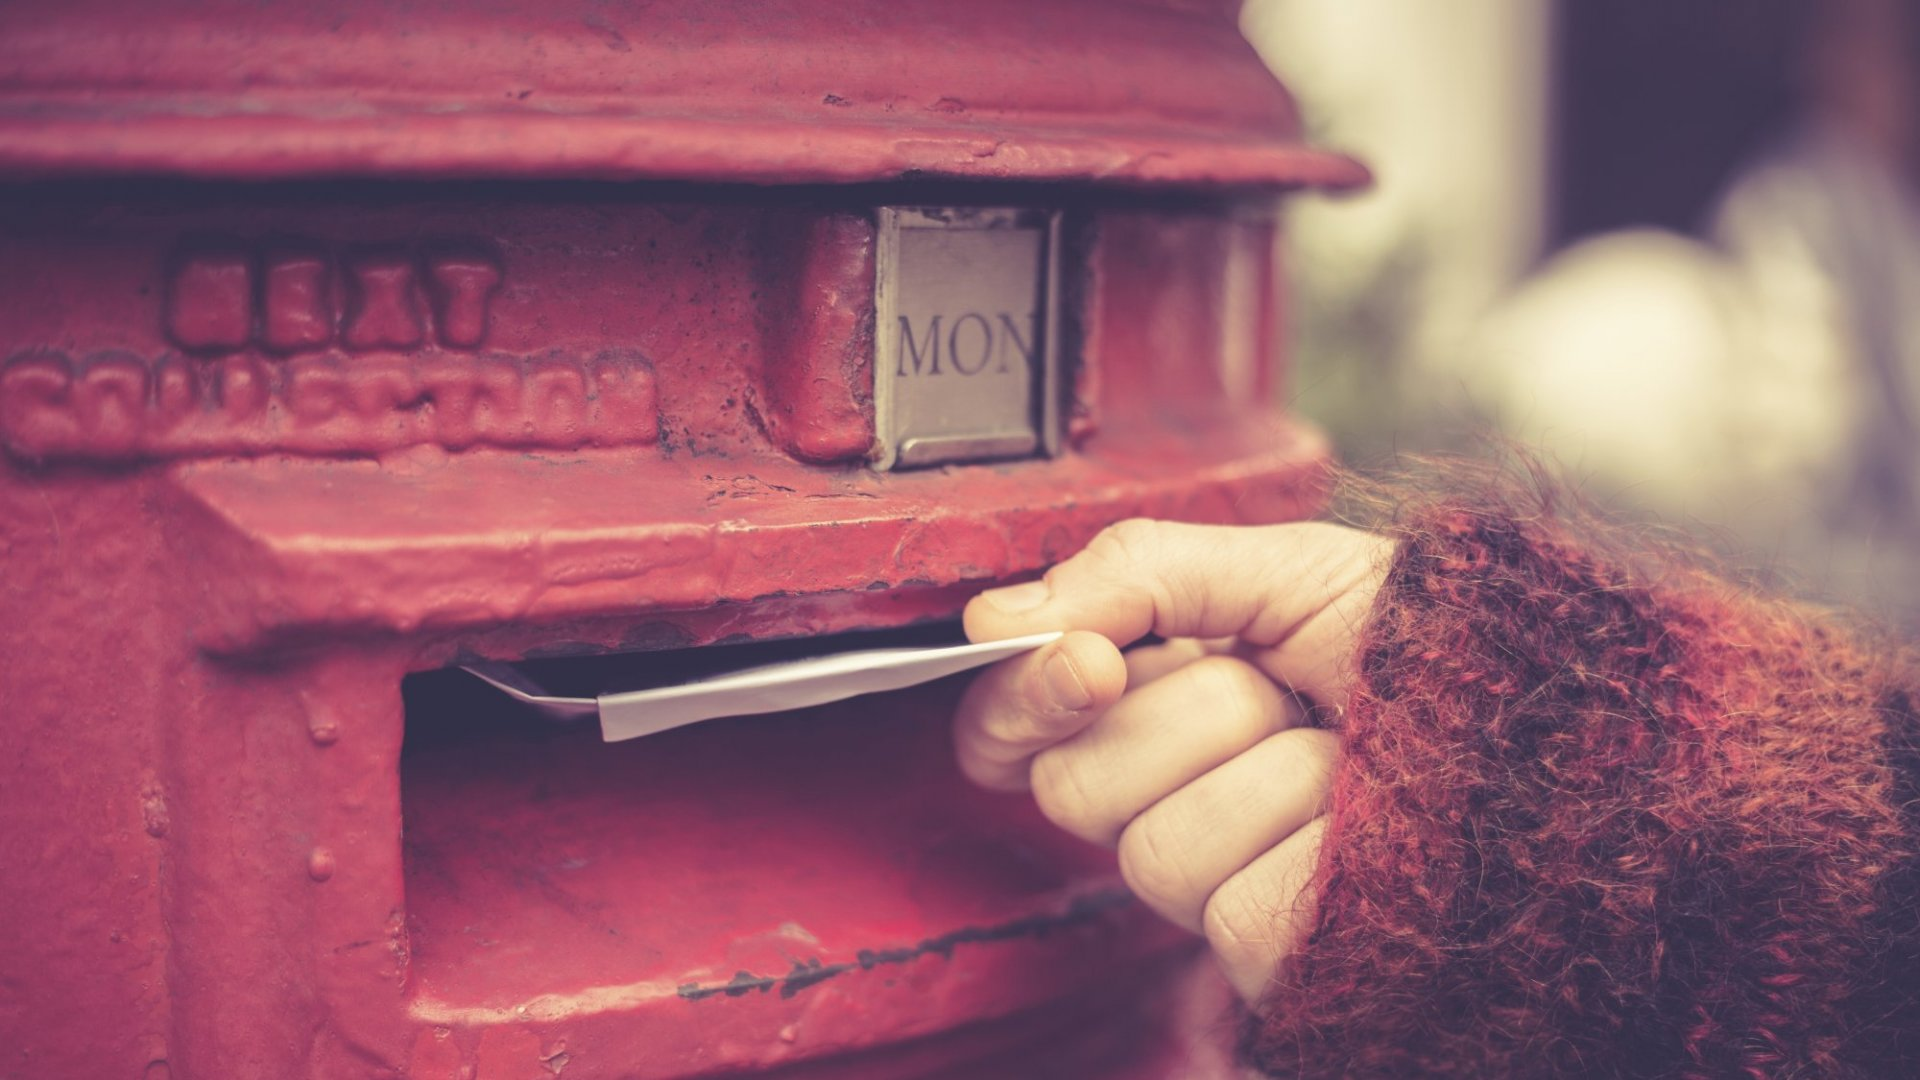 Sending old-fashioned mail is trendy again